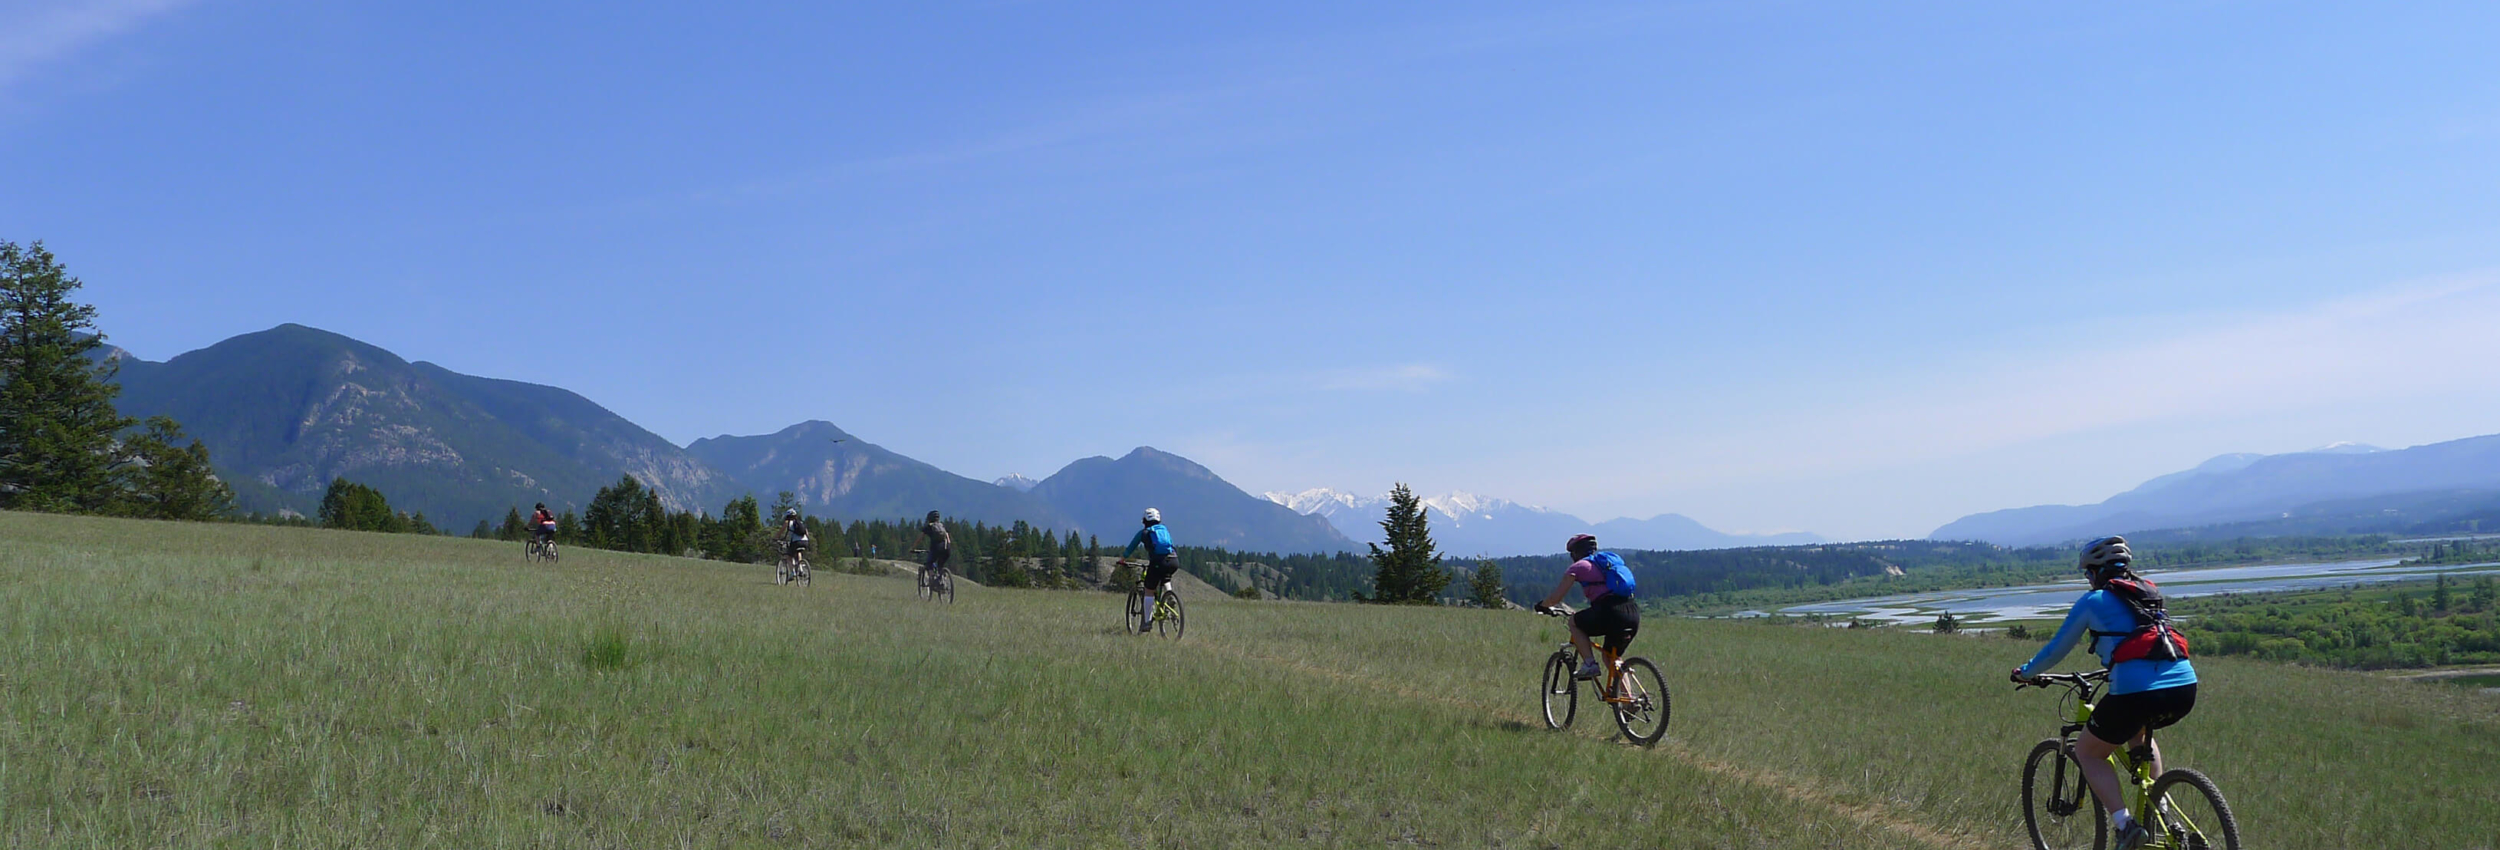 Invermere riding